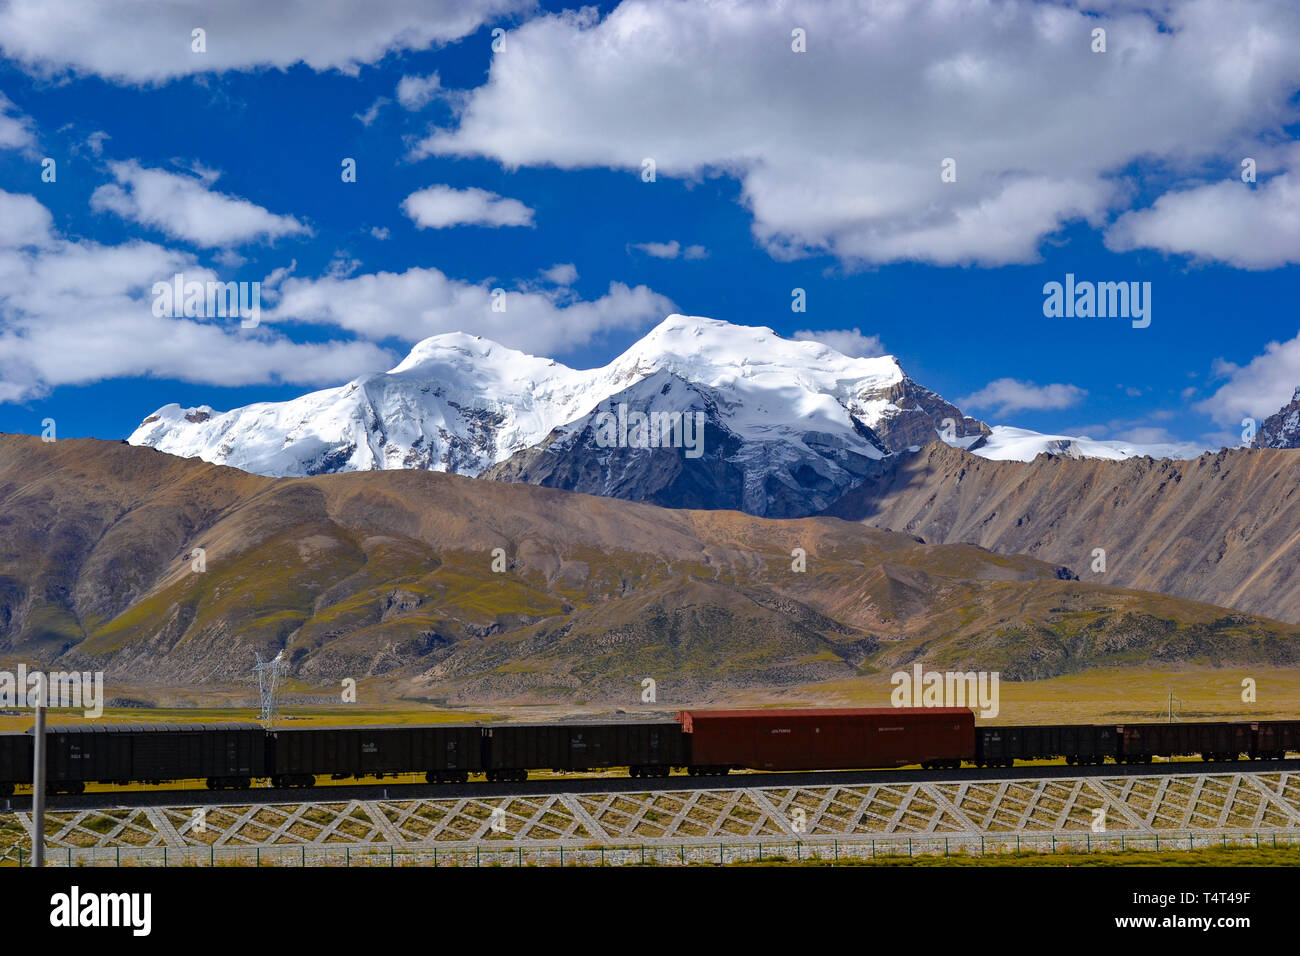 Qinghai–Tibet railway, a high-elevation railway on Tibetan Plateau in Tibet, China Stock Photo